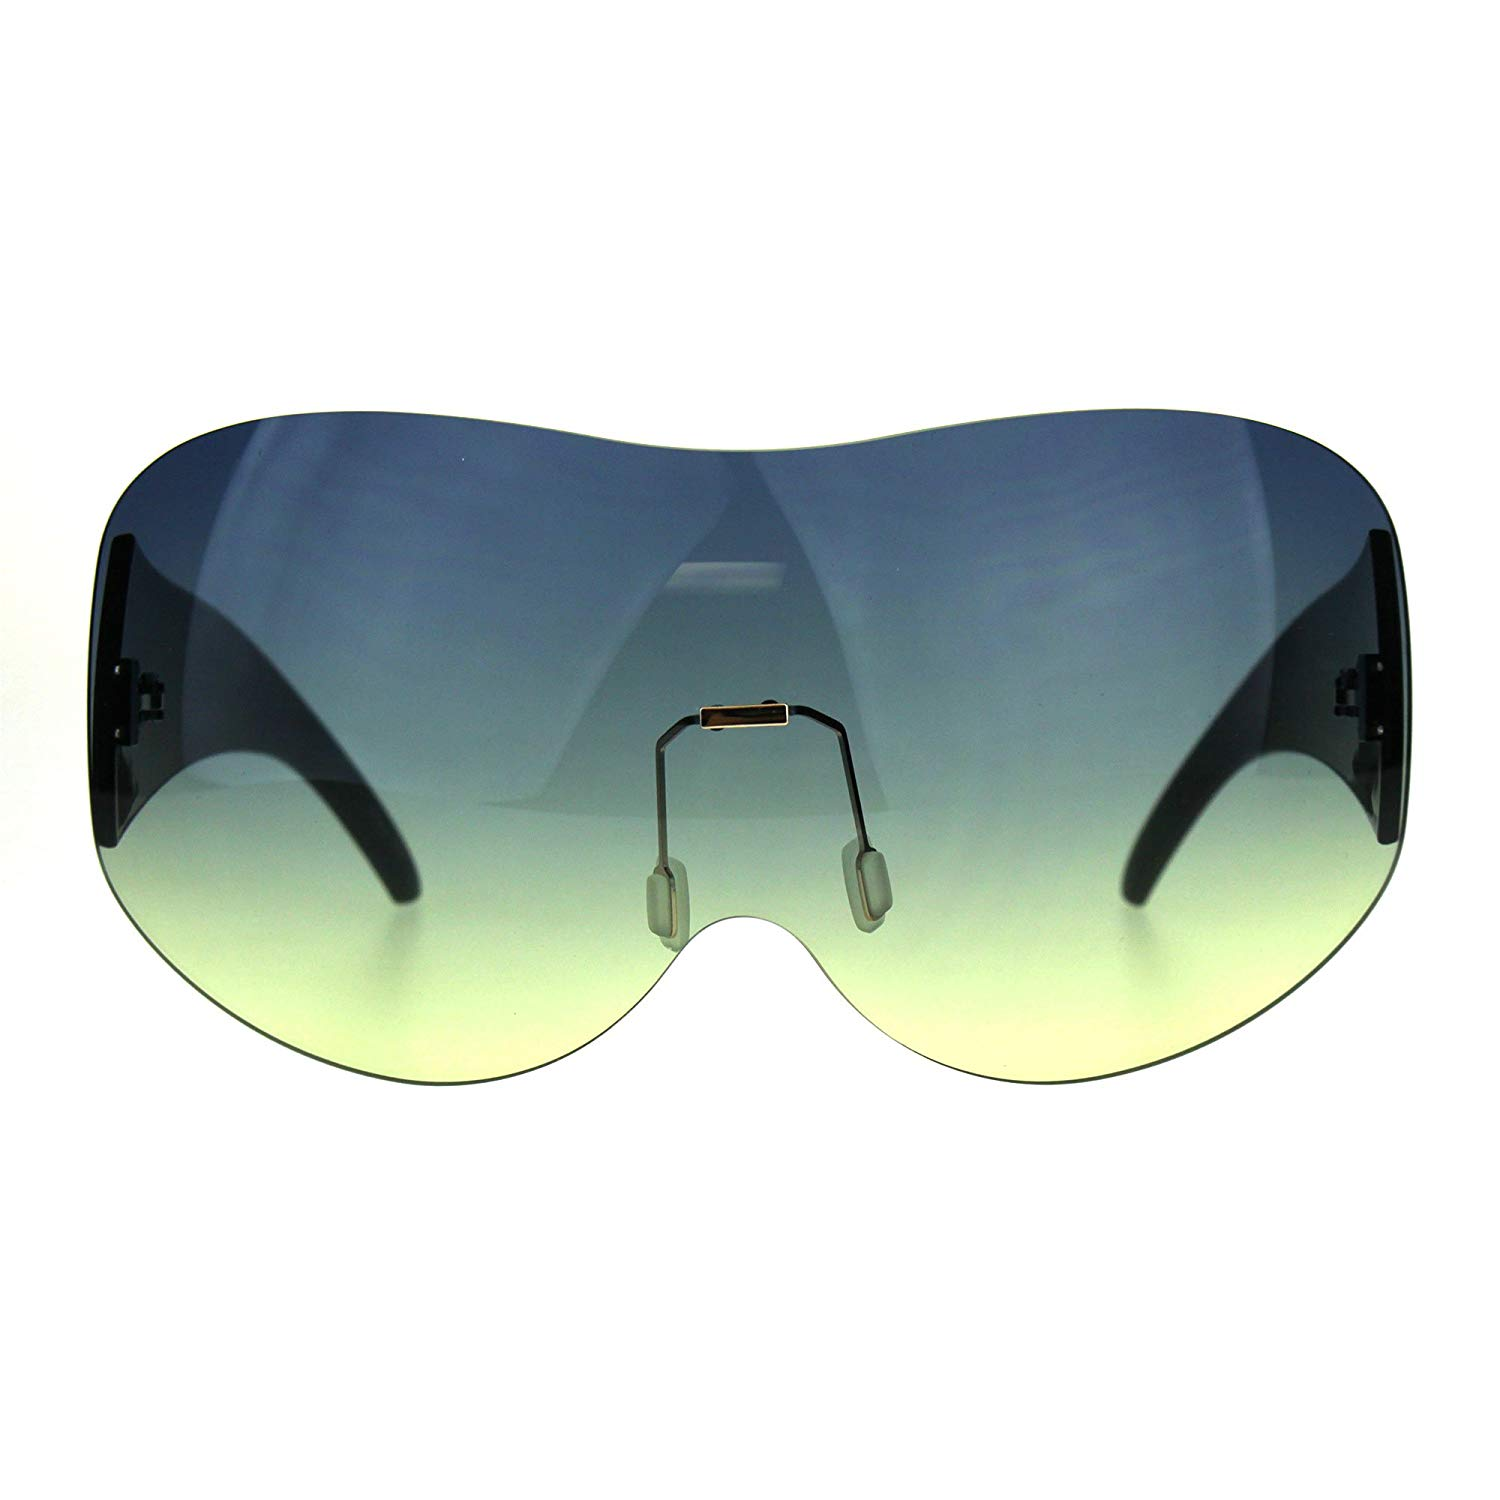 fc53efa8067 Get Quotations · Extra Large Fighter Jet Mask Shield Pilots Sunglasses